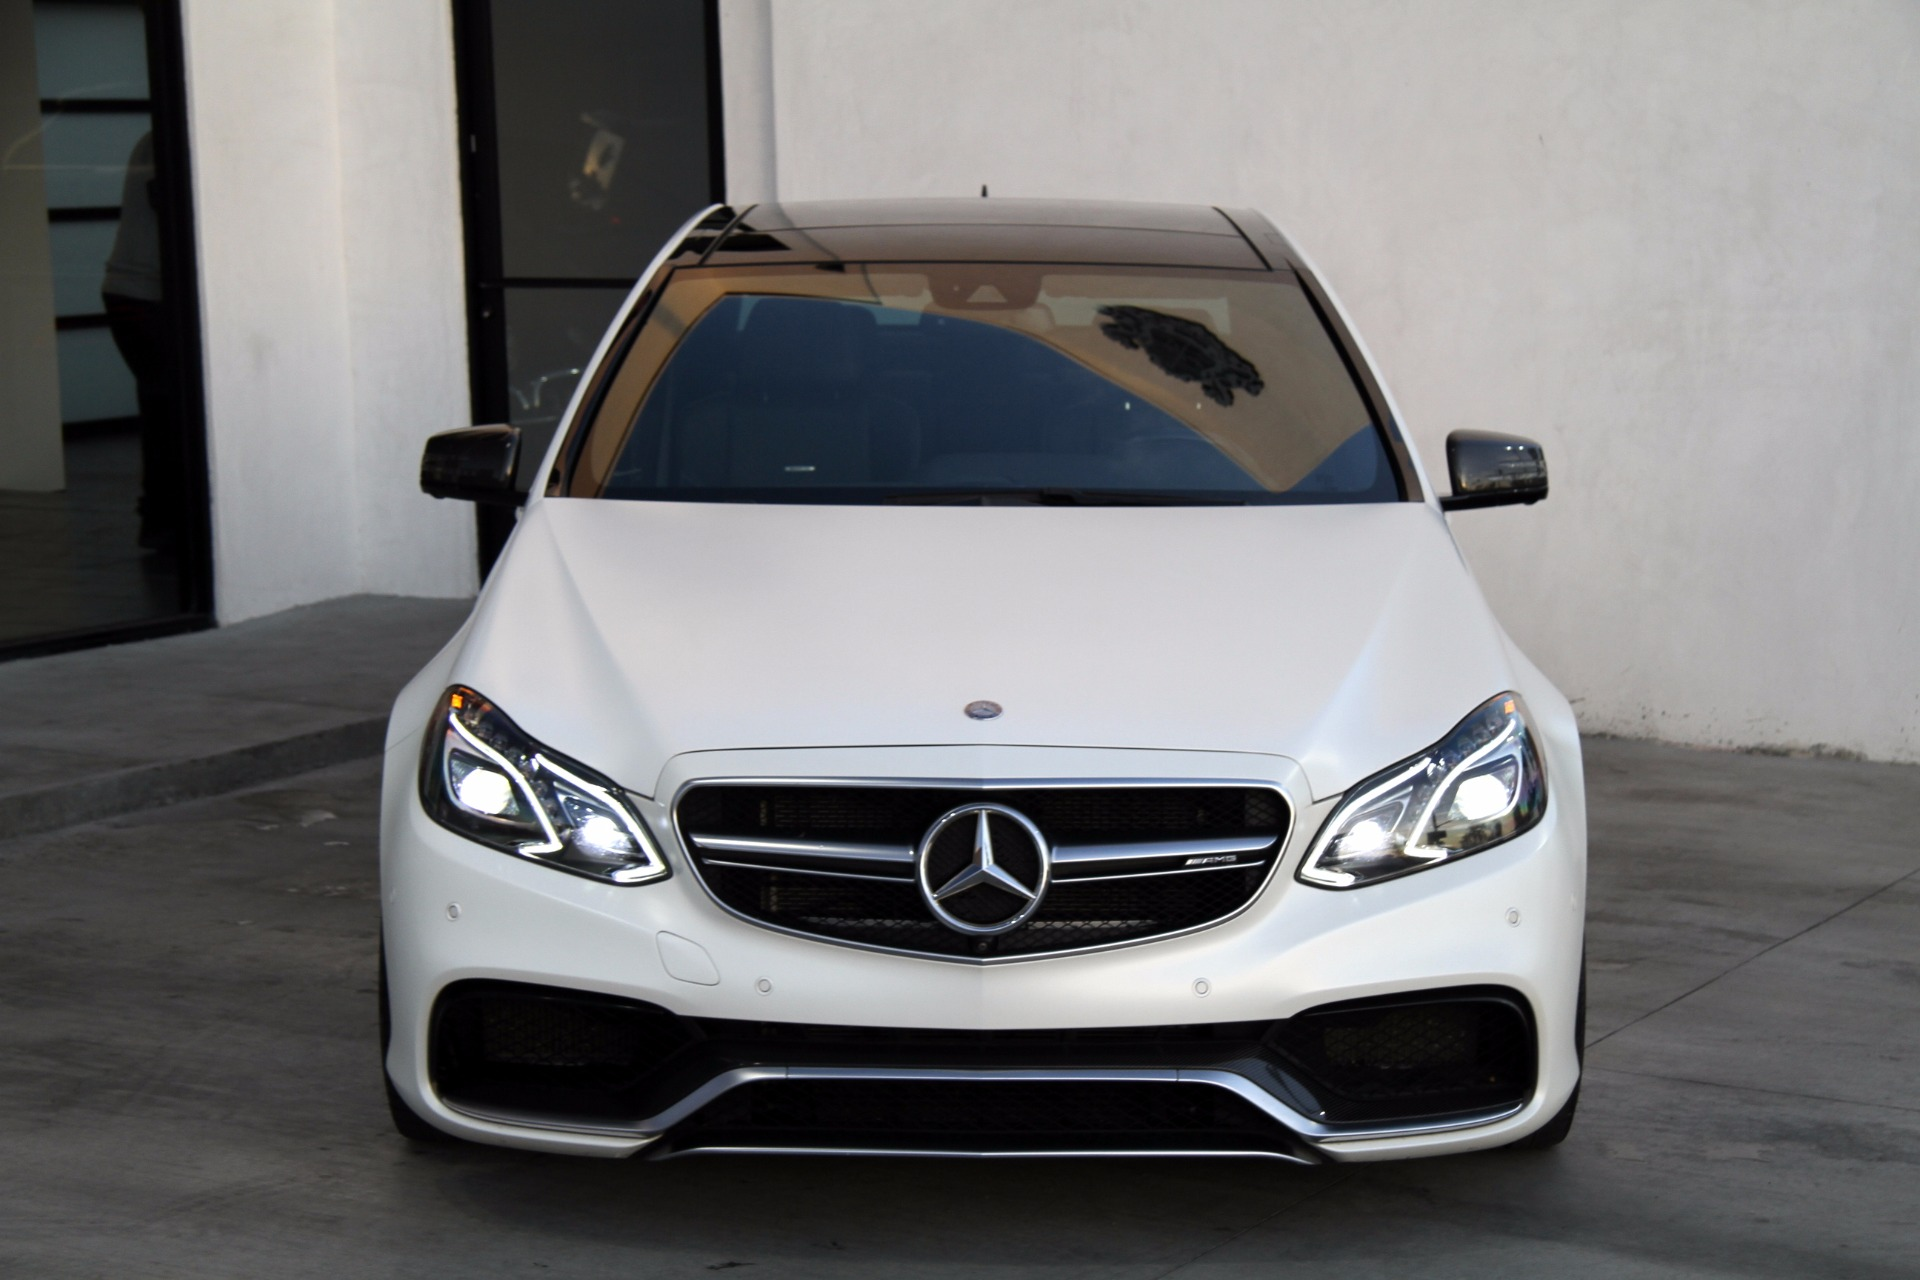 2015 mercedes benz e 63 amg s model stock 6049 for sale for Mercedes benz 2015 models